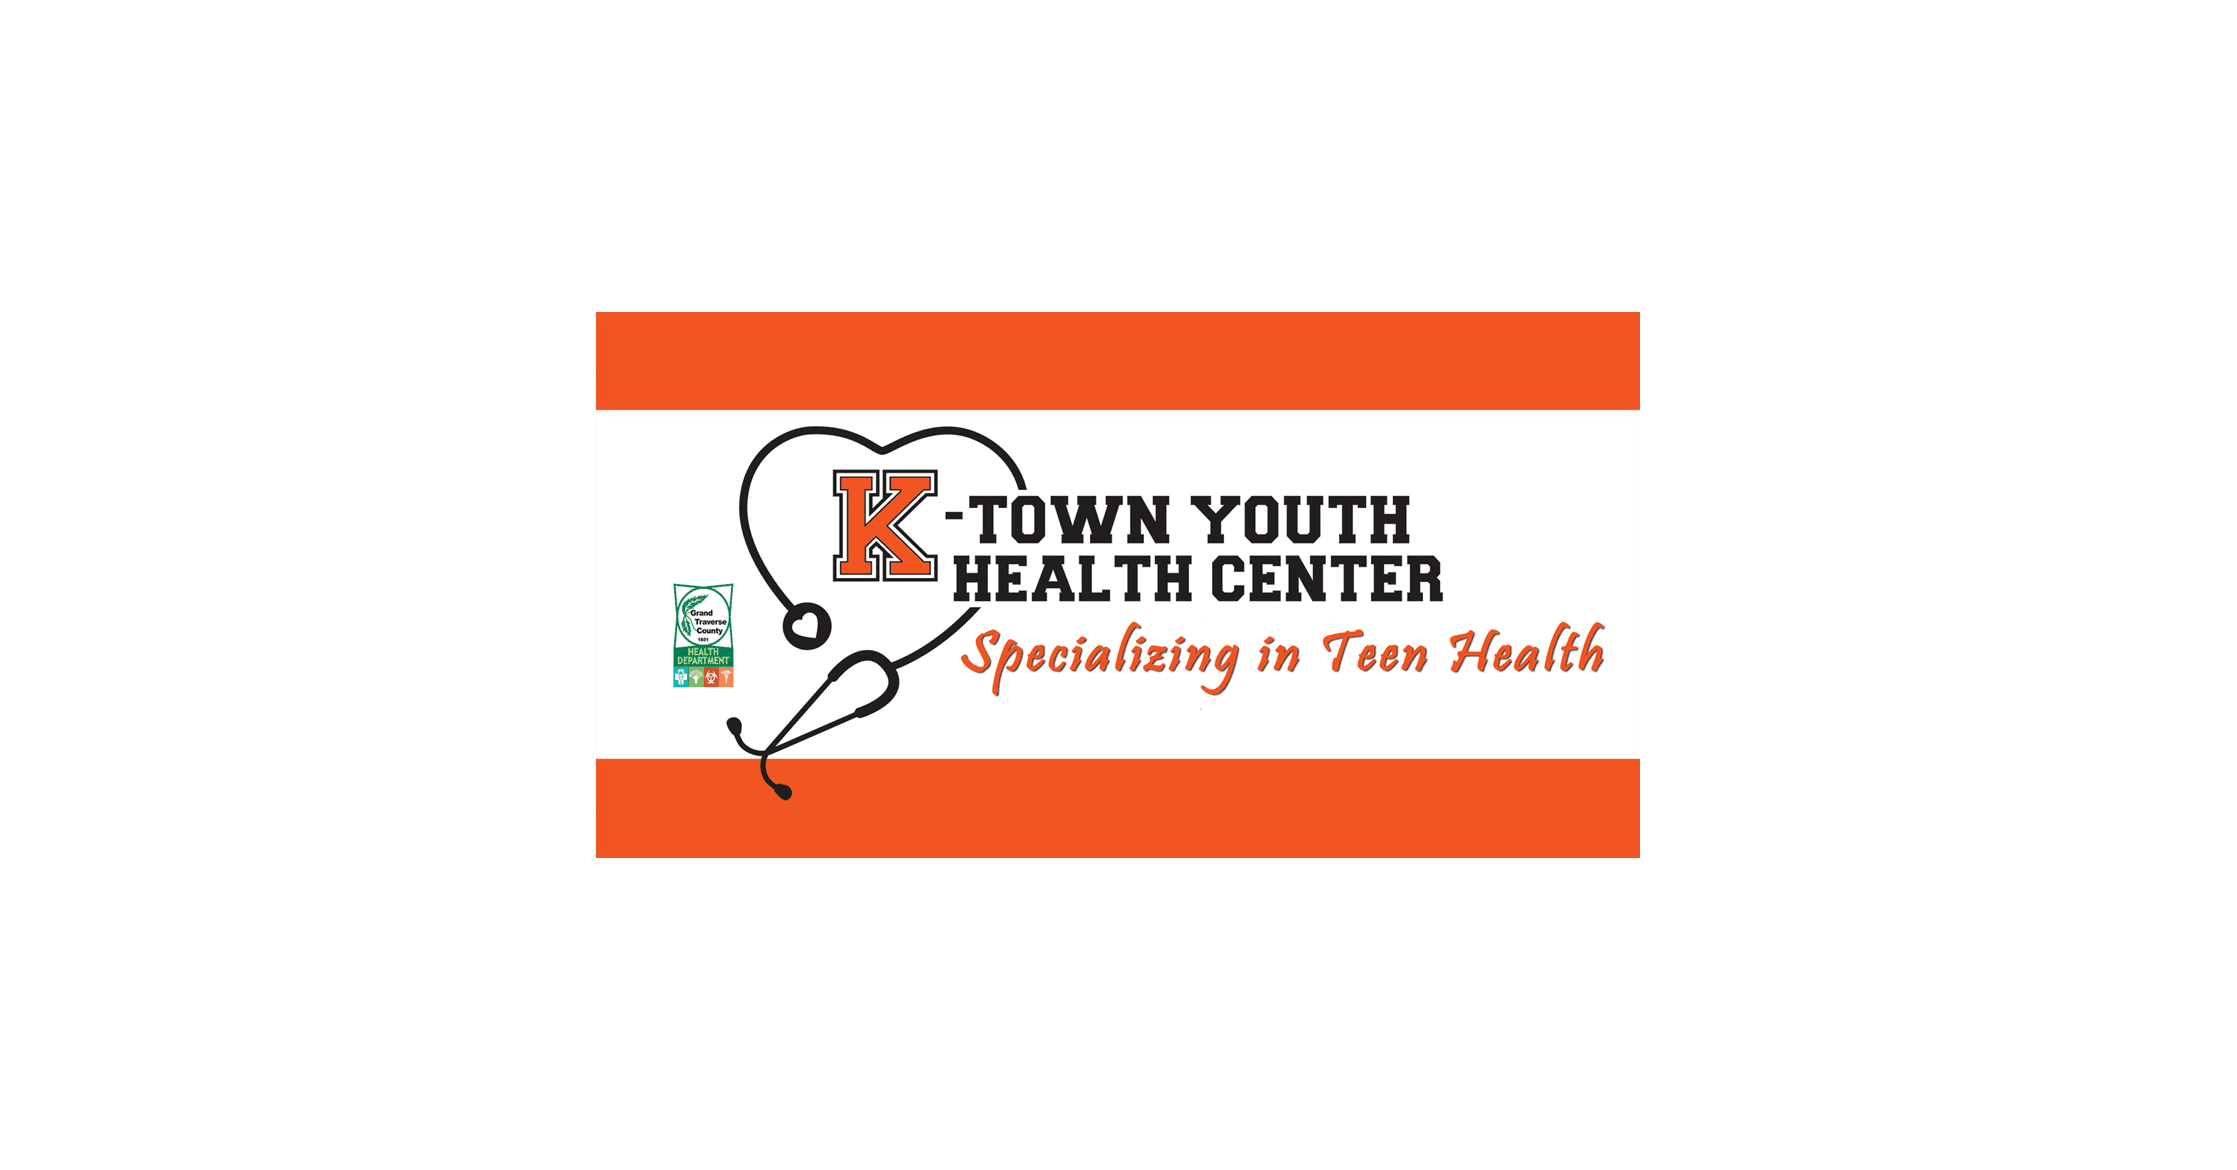 K-Town Youth Health Center